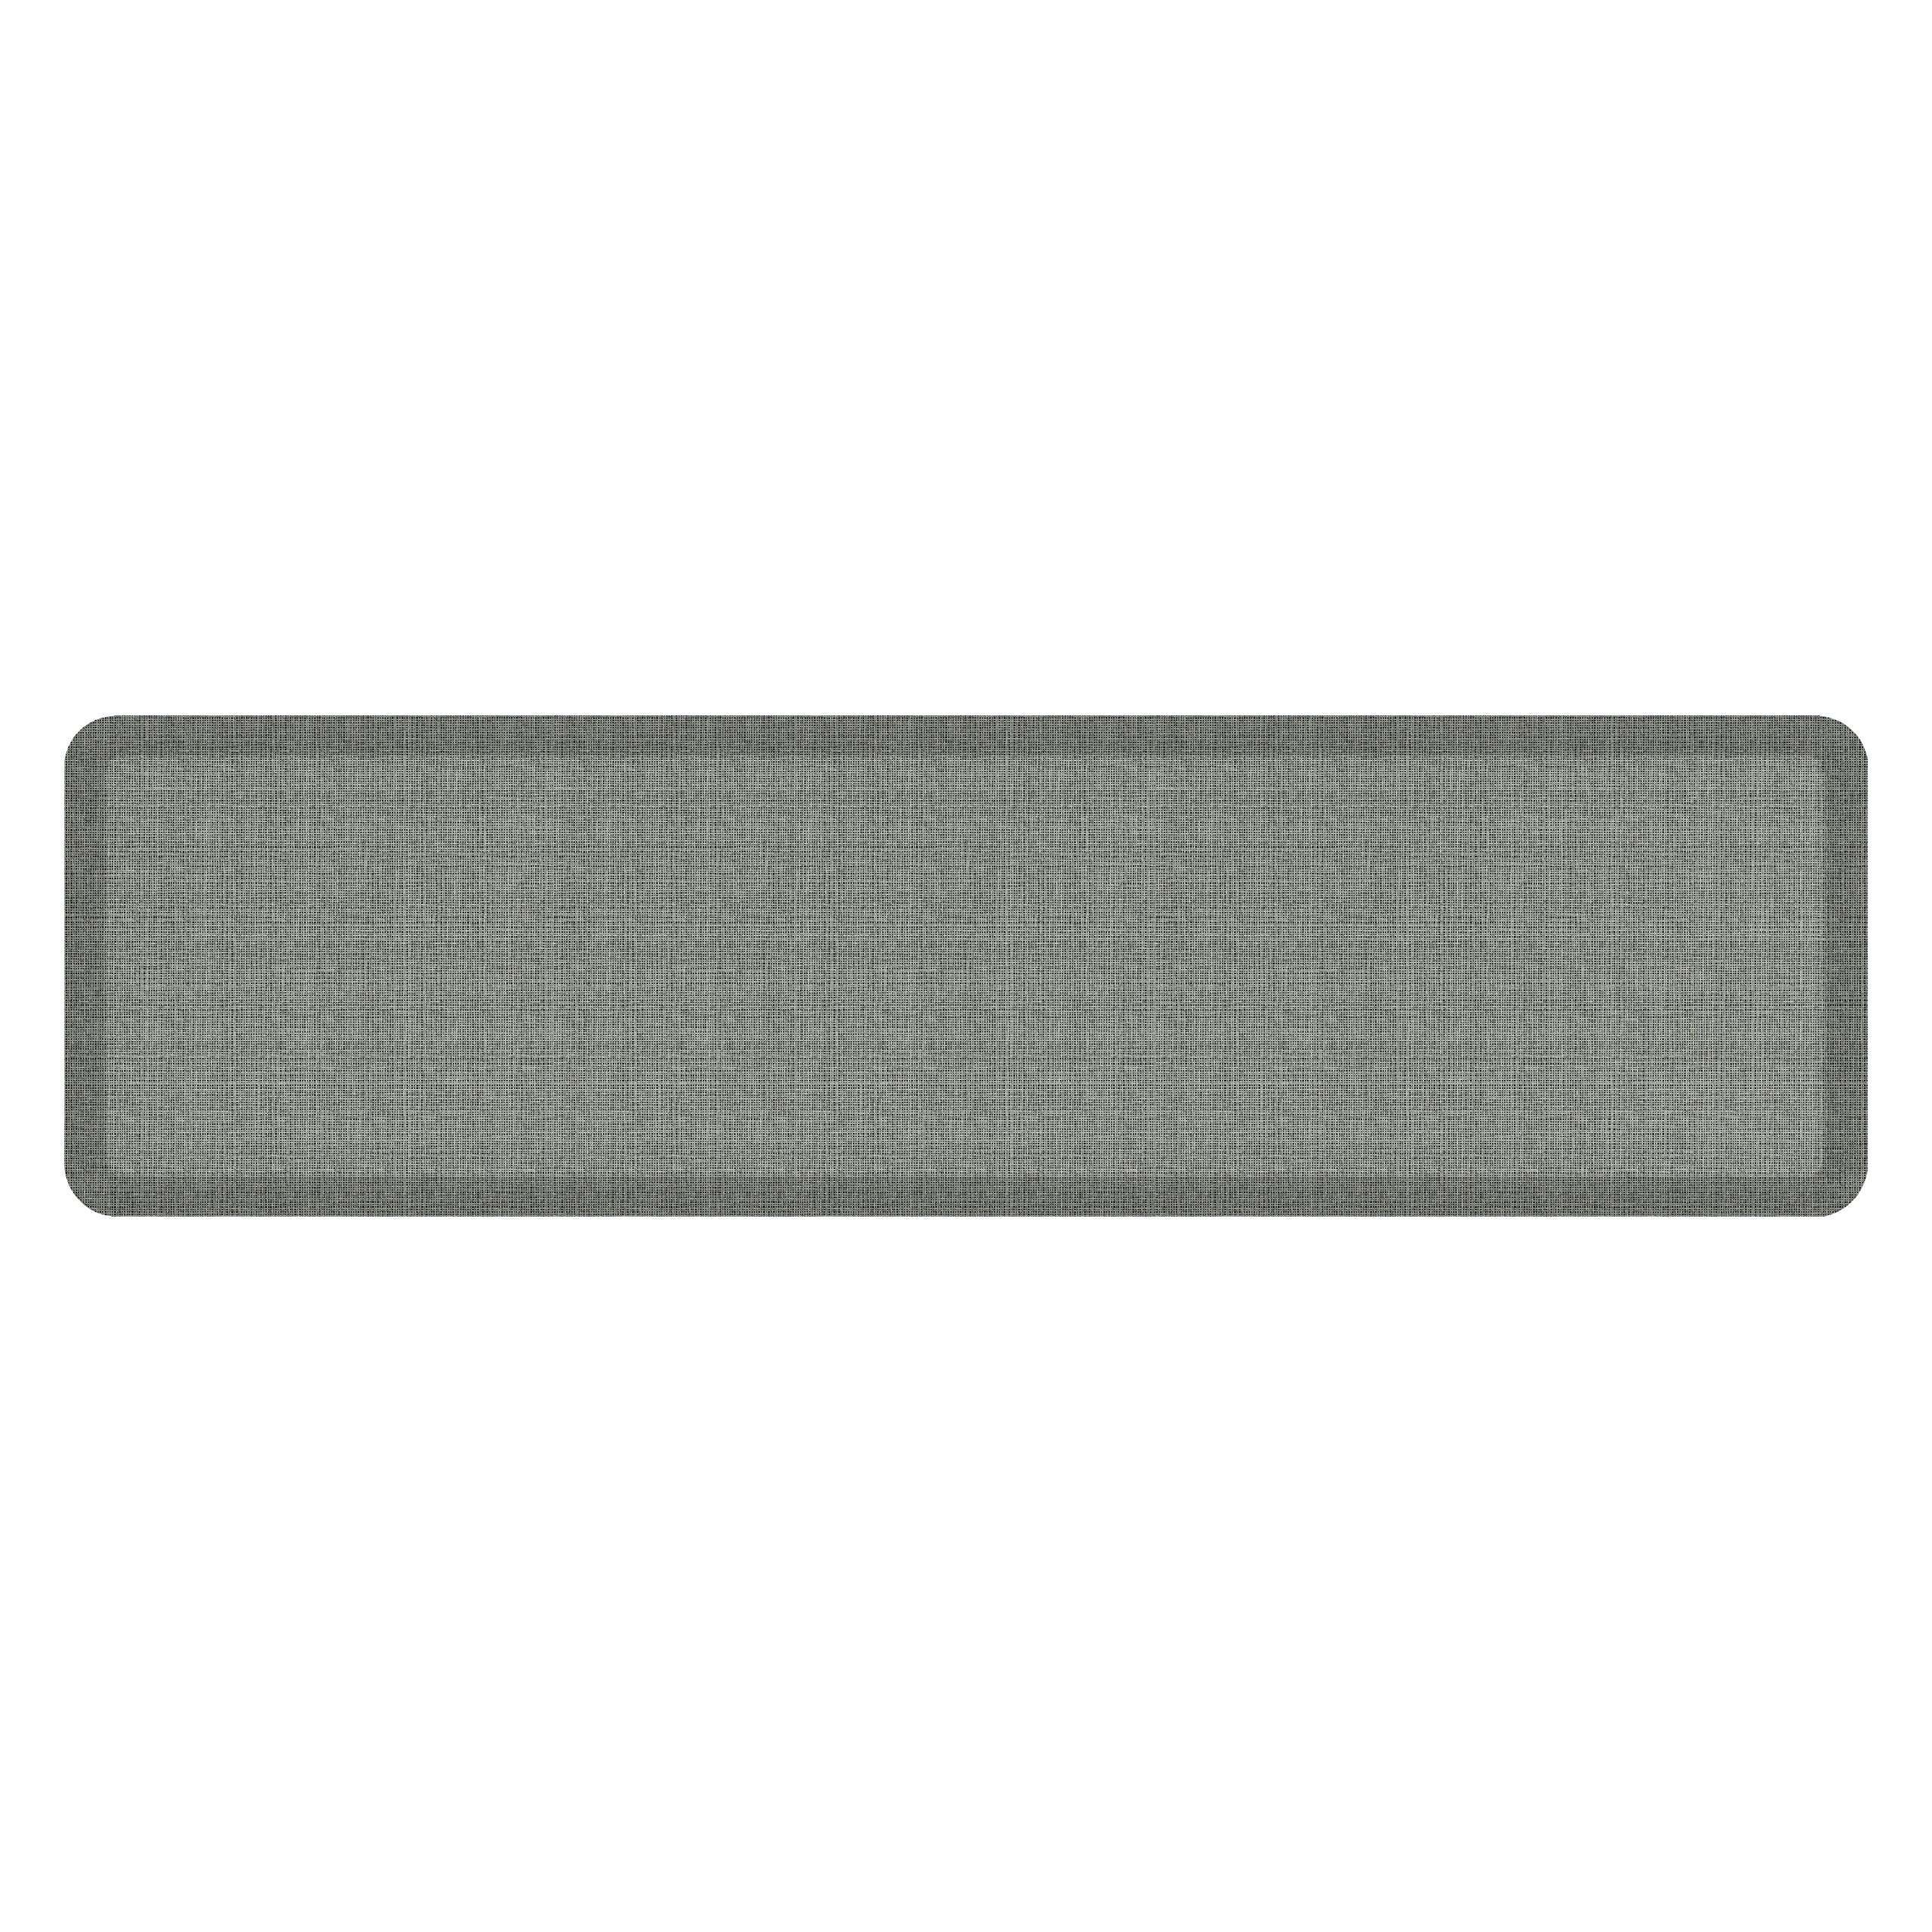 """NewLife by GelPro Anti-Fatigue Designer Comfort Kitchen Floor Mat, 20x72'', Tweed Grey Goose Stain Resistant Surface with 3/4"""" Thick Ergo-foam Core for Health and Wellness"""